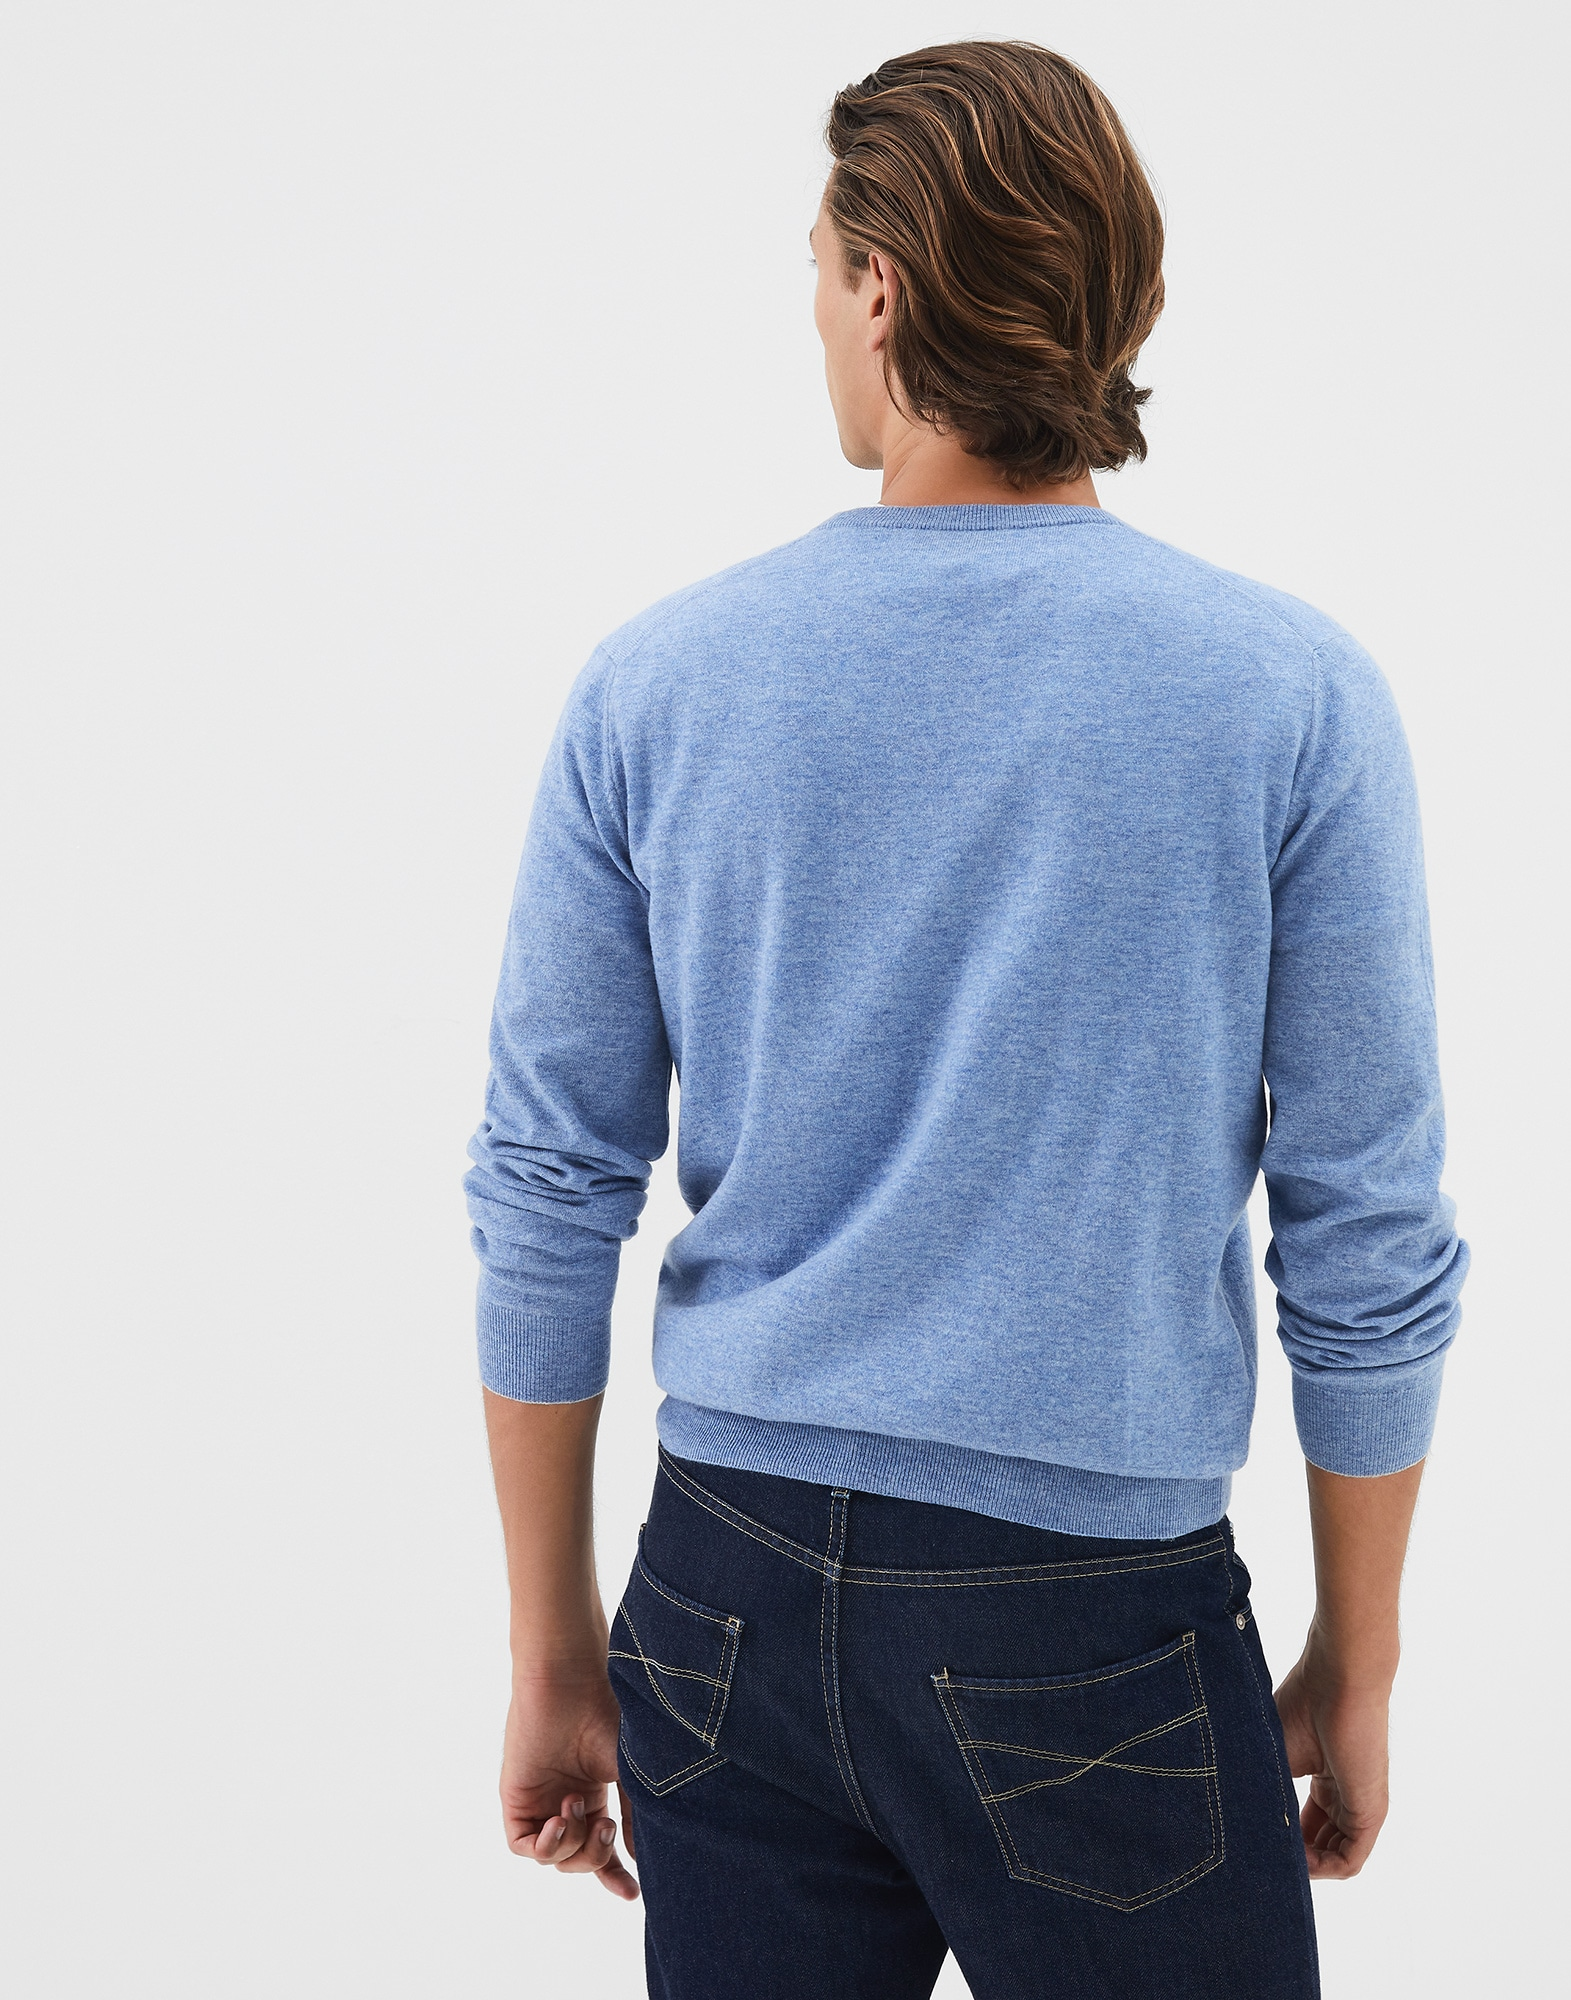 Crewneck Sweater Azure Man 1 - Brunello Cucinelli